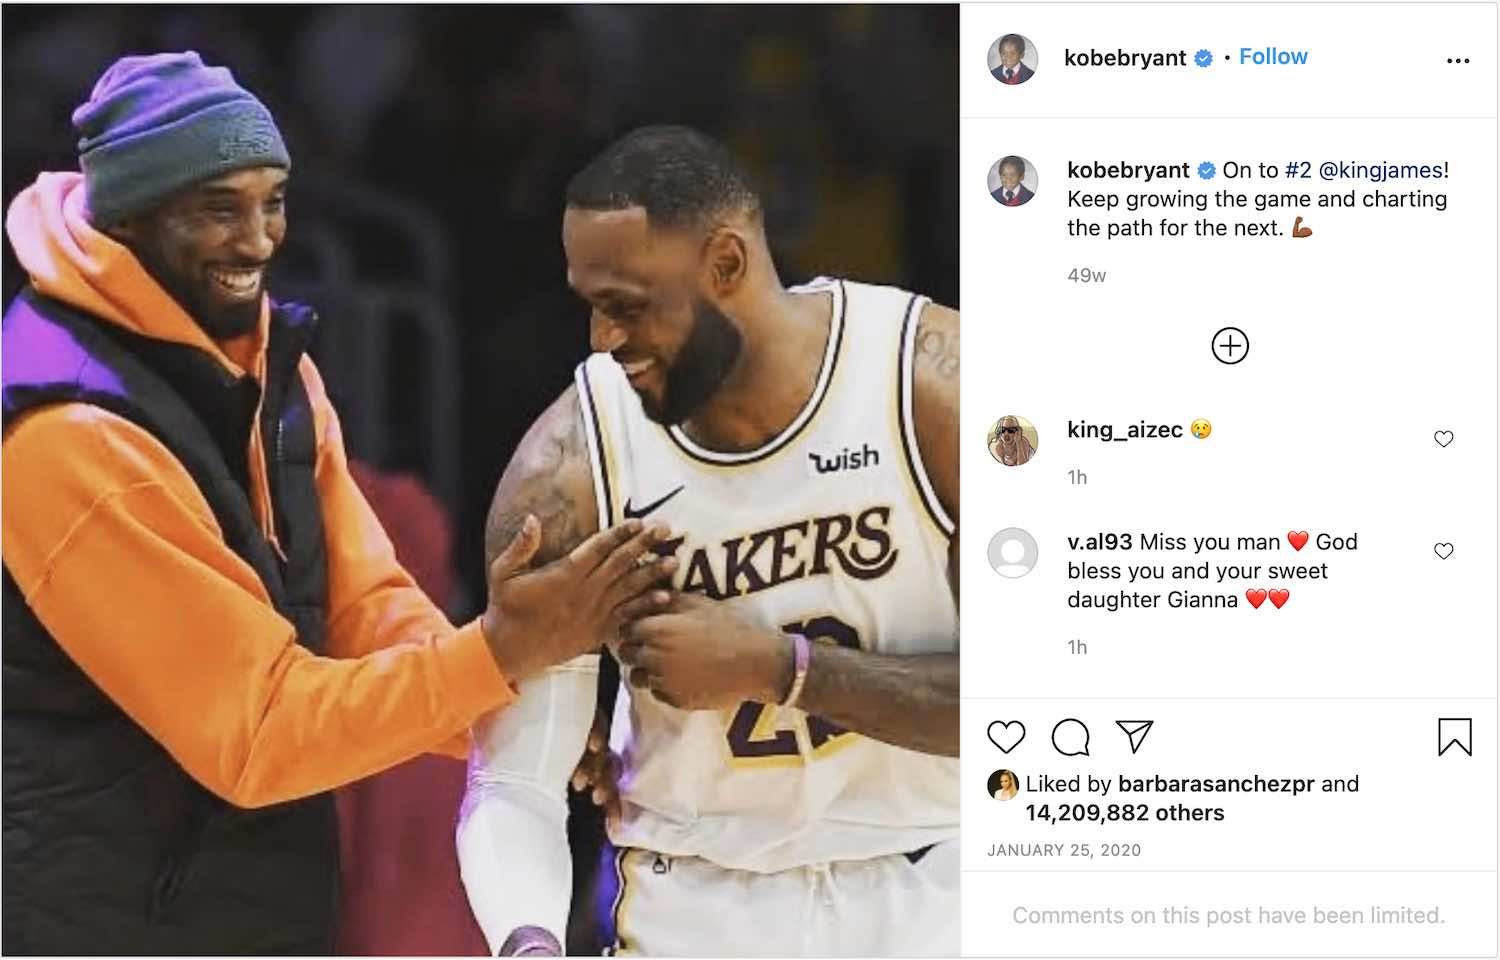 Kobe Bryant's last Instagram post is a picture of LeBron James and himself.